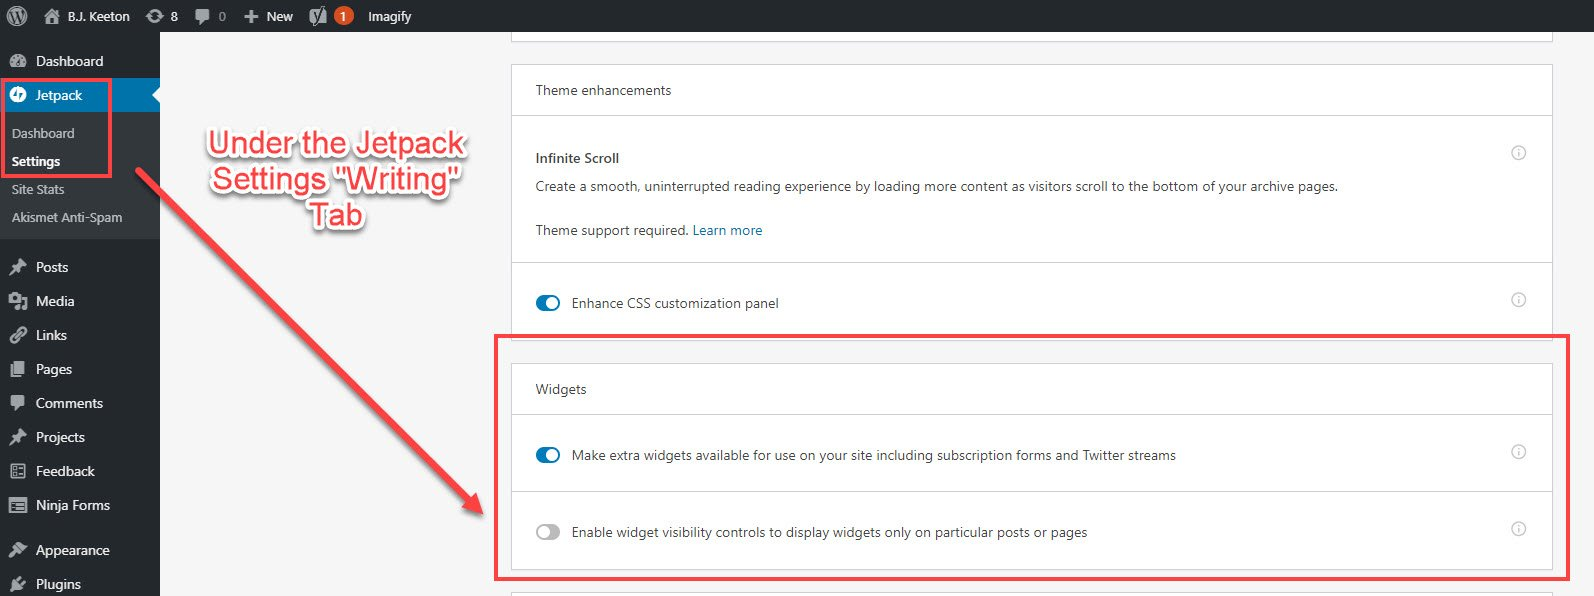 WordPress widget visibility options through Jetpack Writing Tab